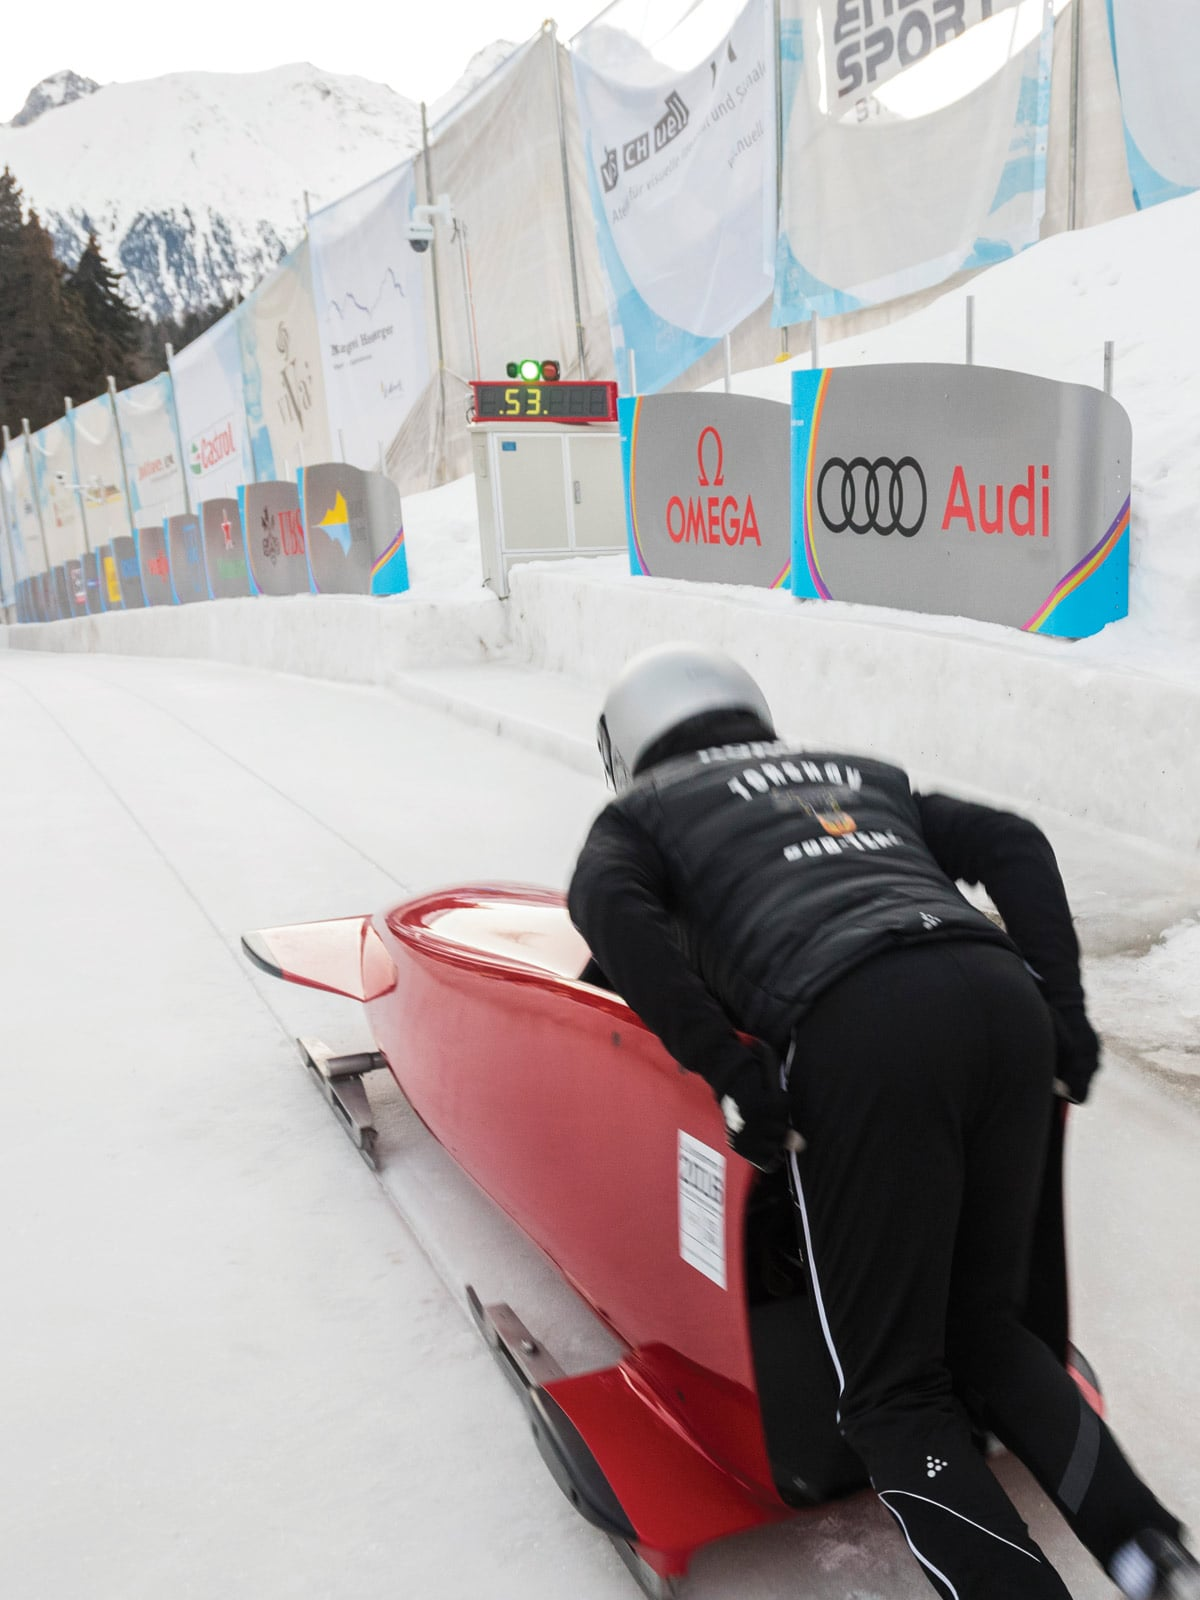 Bobsleigh and monobob: fast-paced winter thrills Item 2 - 1599